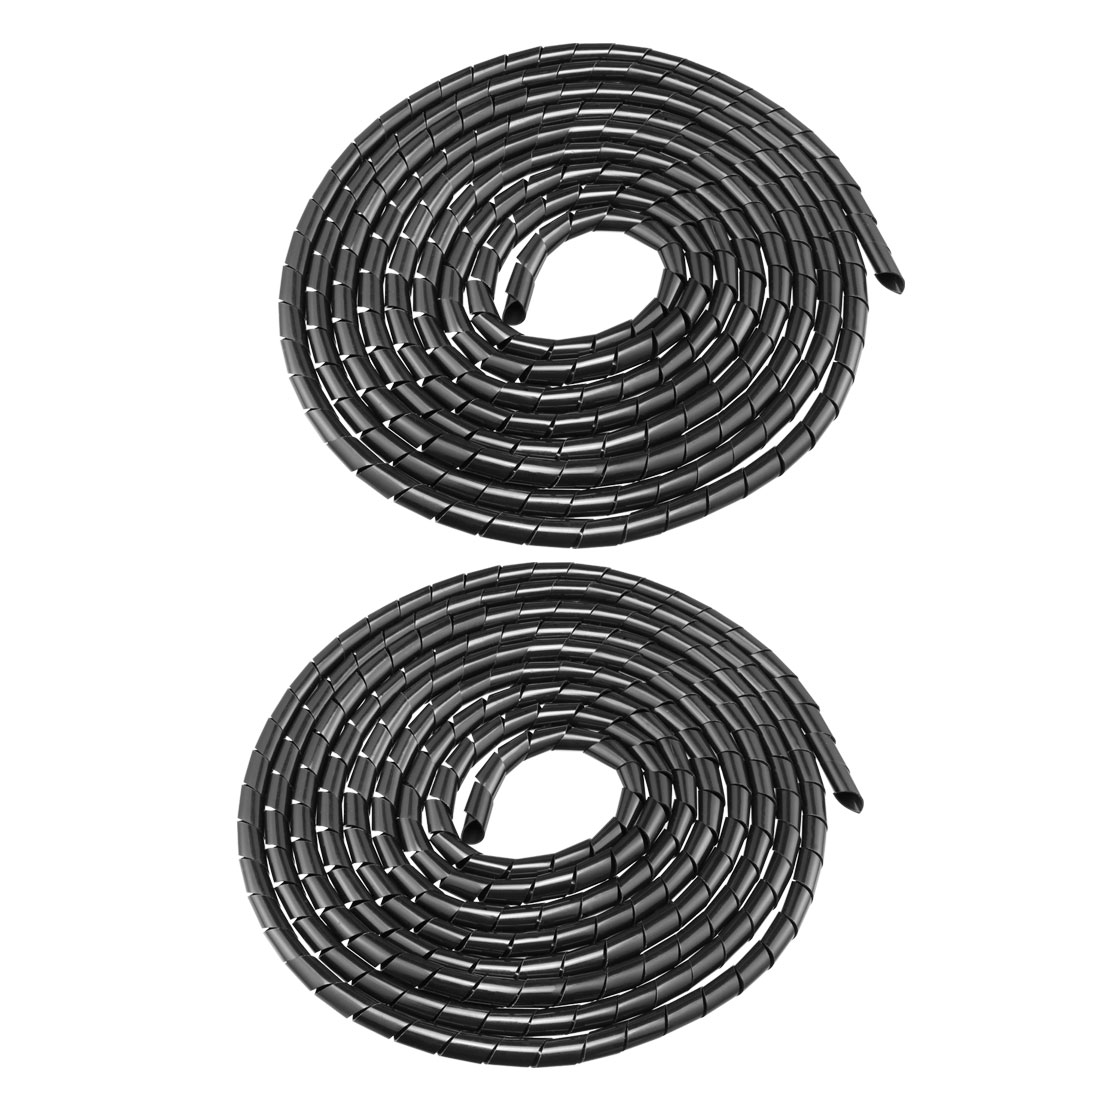 2pcs 14mm Flexible Spiral Tube Cable Wiring Wrap Computer Manage Cord 4.5-6M